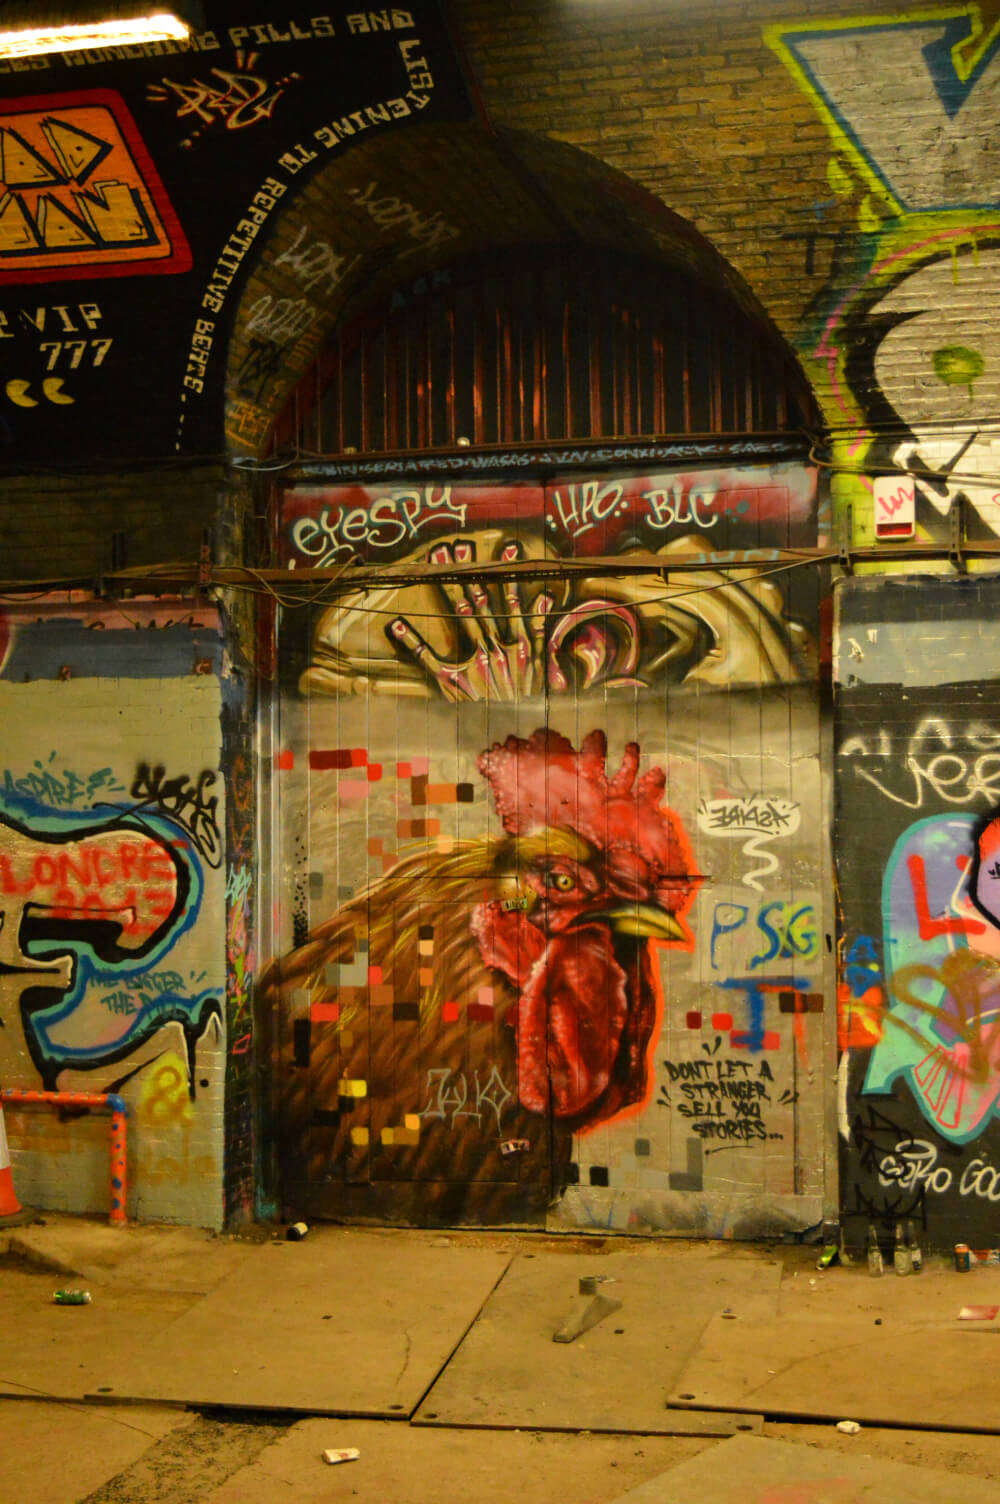 Leake Street Graffiti Tunnel, Waterloo, London